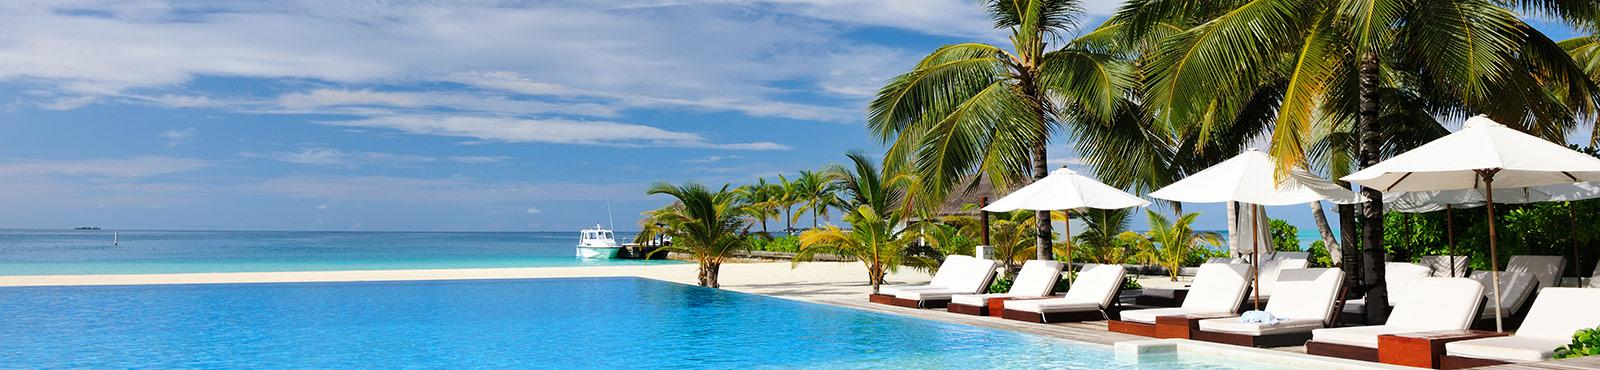 Best All-Inclusive Destinations in Mexico & Central America Marquee